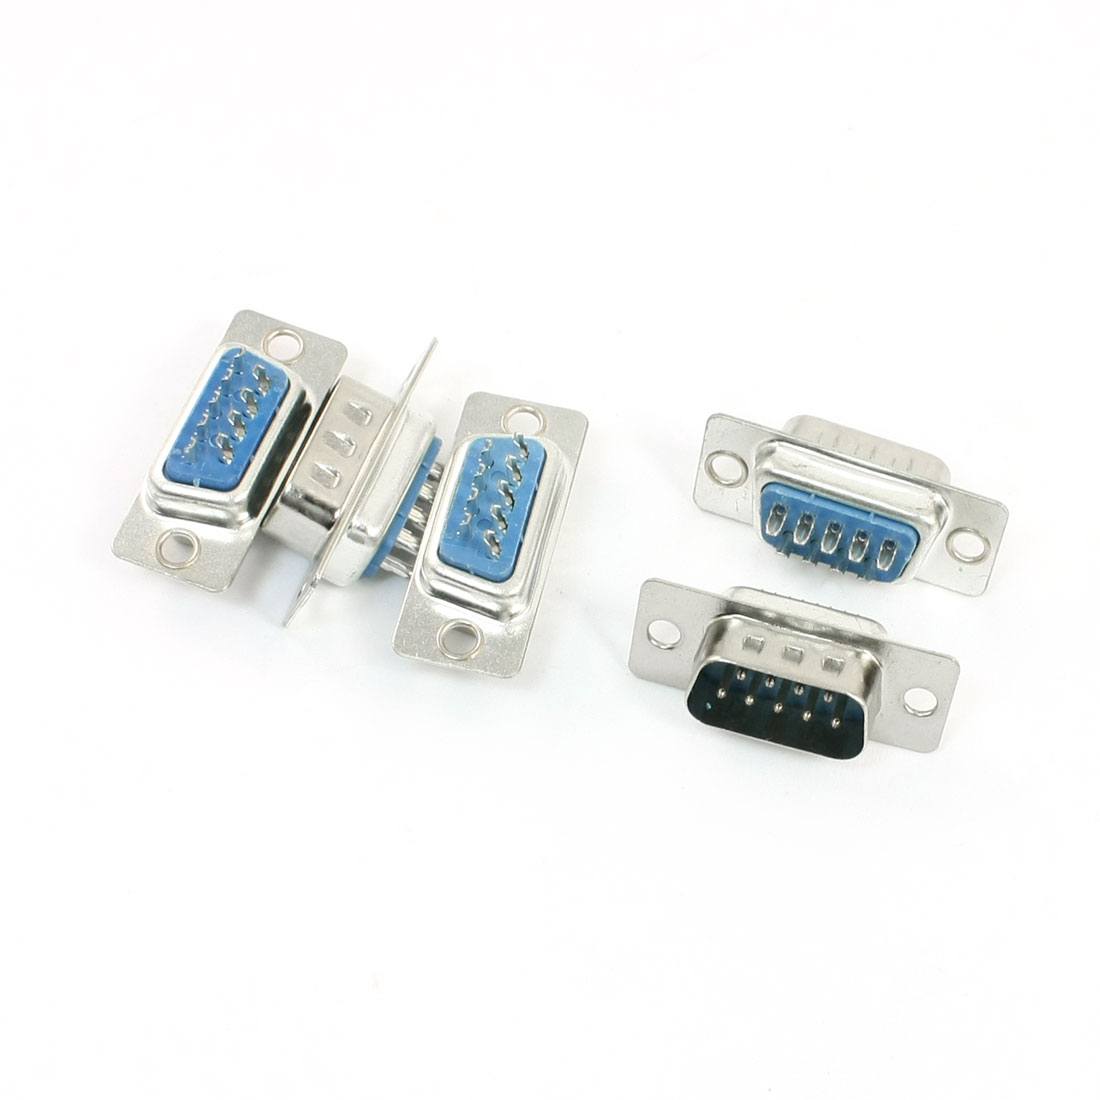 Soldering 2 Row DB-9 Male 9Pin VGA D-Sub Connector Adapter 5Pcs